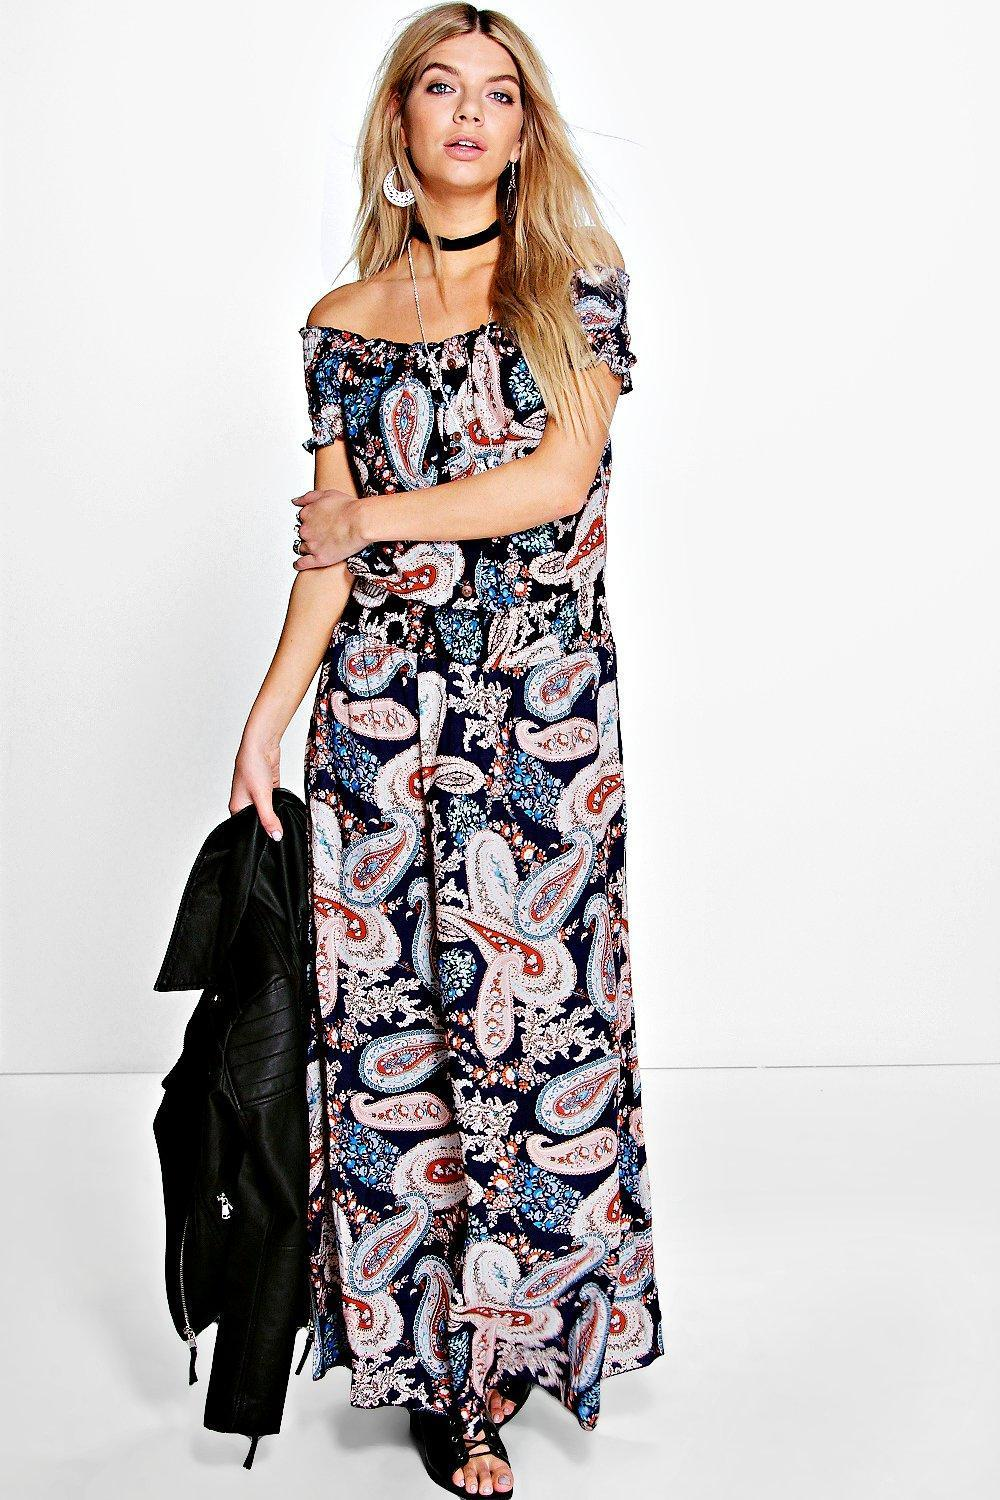 Paisley Print Woven Maxi Dress Black - neckline: off the shoulder; style: maxi dress; length: ankle length; waist detail: belted waist/tie at waist/drawstring; secondary colour: blush; predominant colour: black; occasions: evening; fit: body skimming; fibres: viscose/rayon - 100%; sleeve length: short sleeve; sleeve style: standard; pattern type: fabric; pattern: florals; texture group: jersey - stretchy/drapey; multicoloured: multicoloured; season: s/s 2016; wardrobe: event